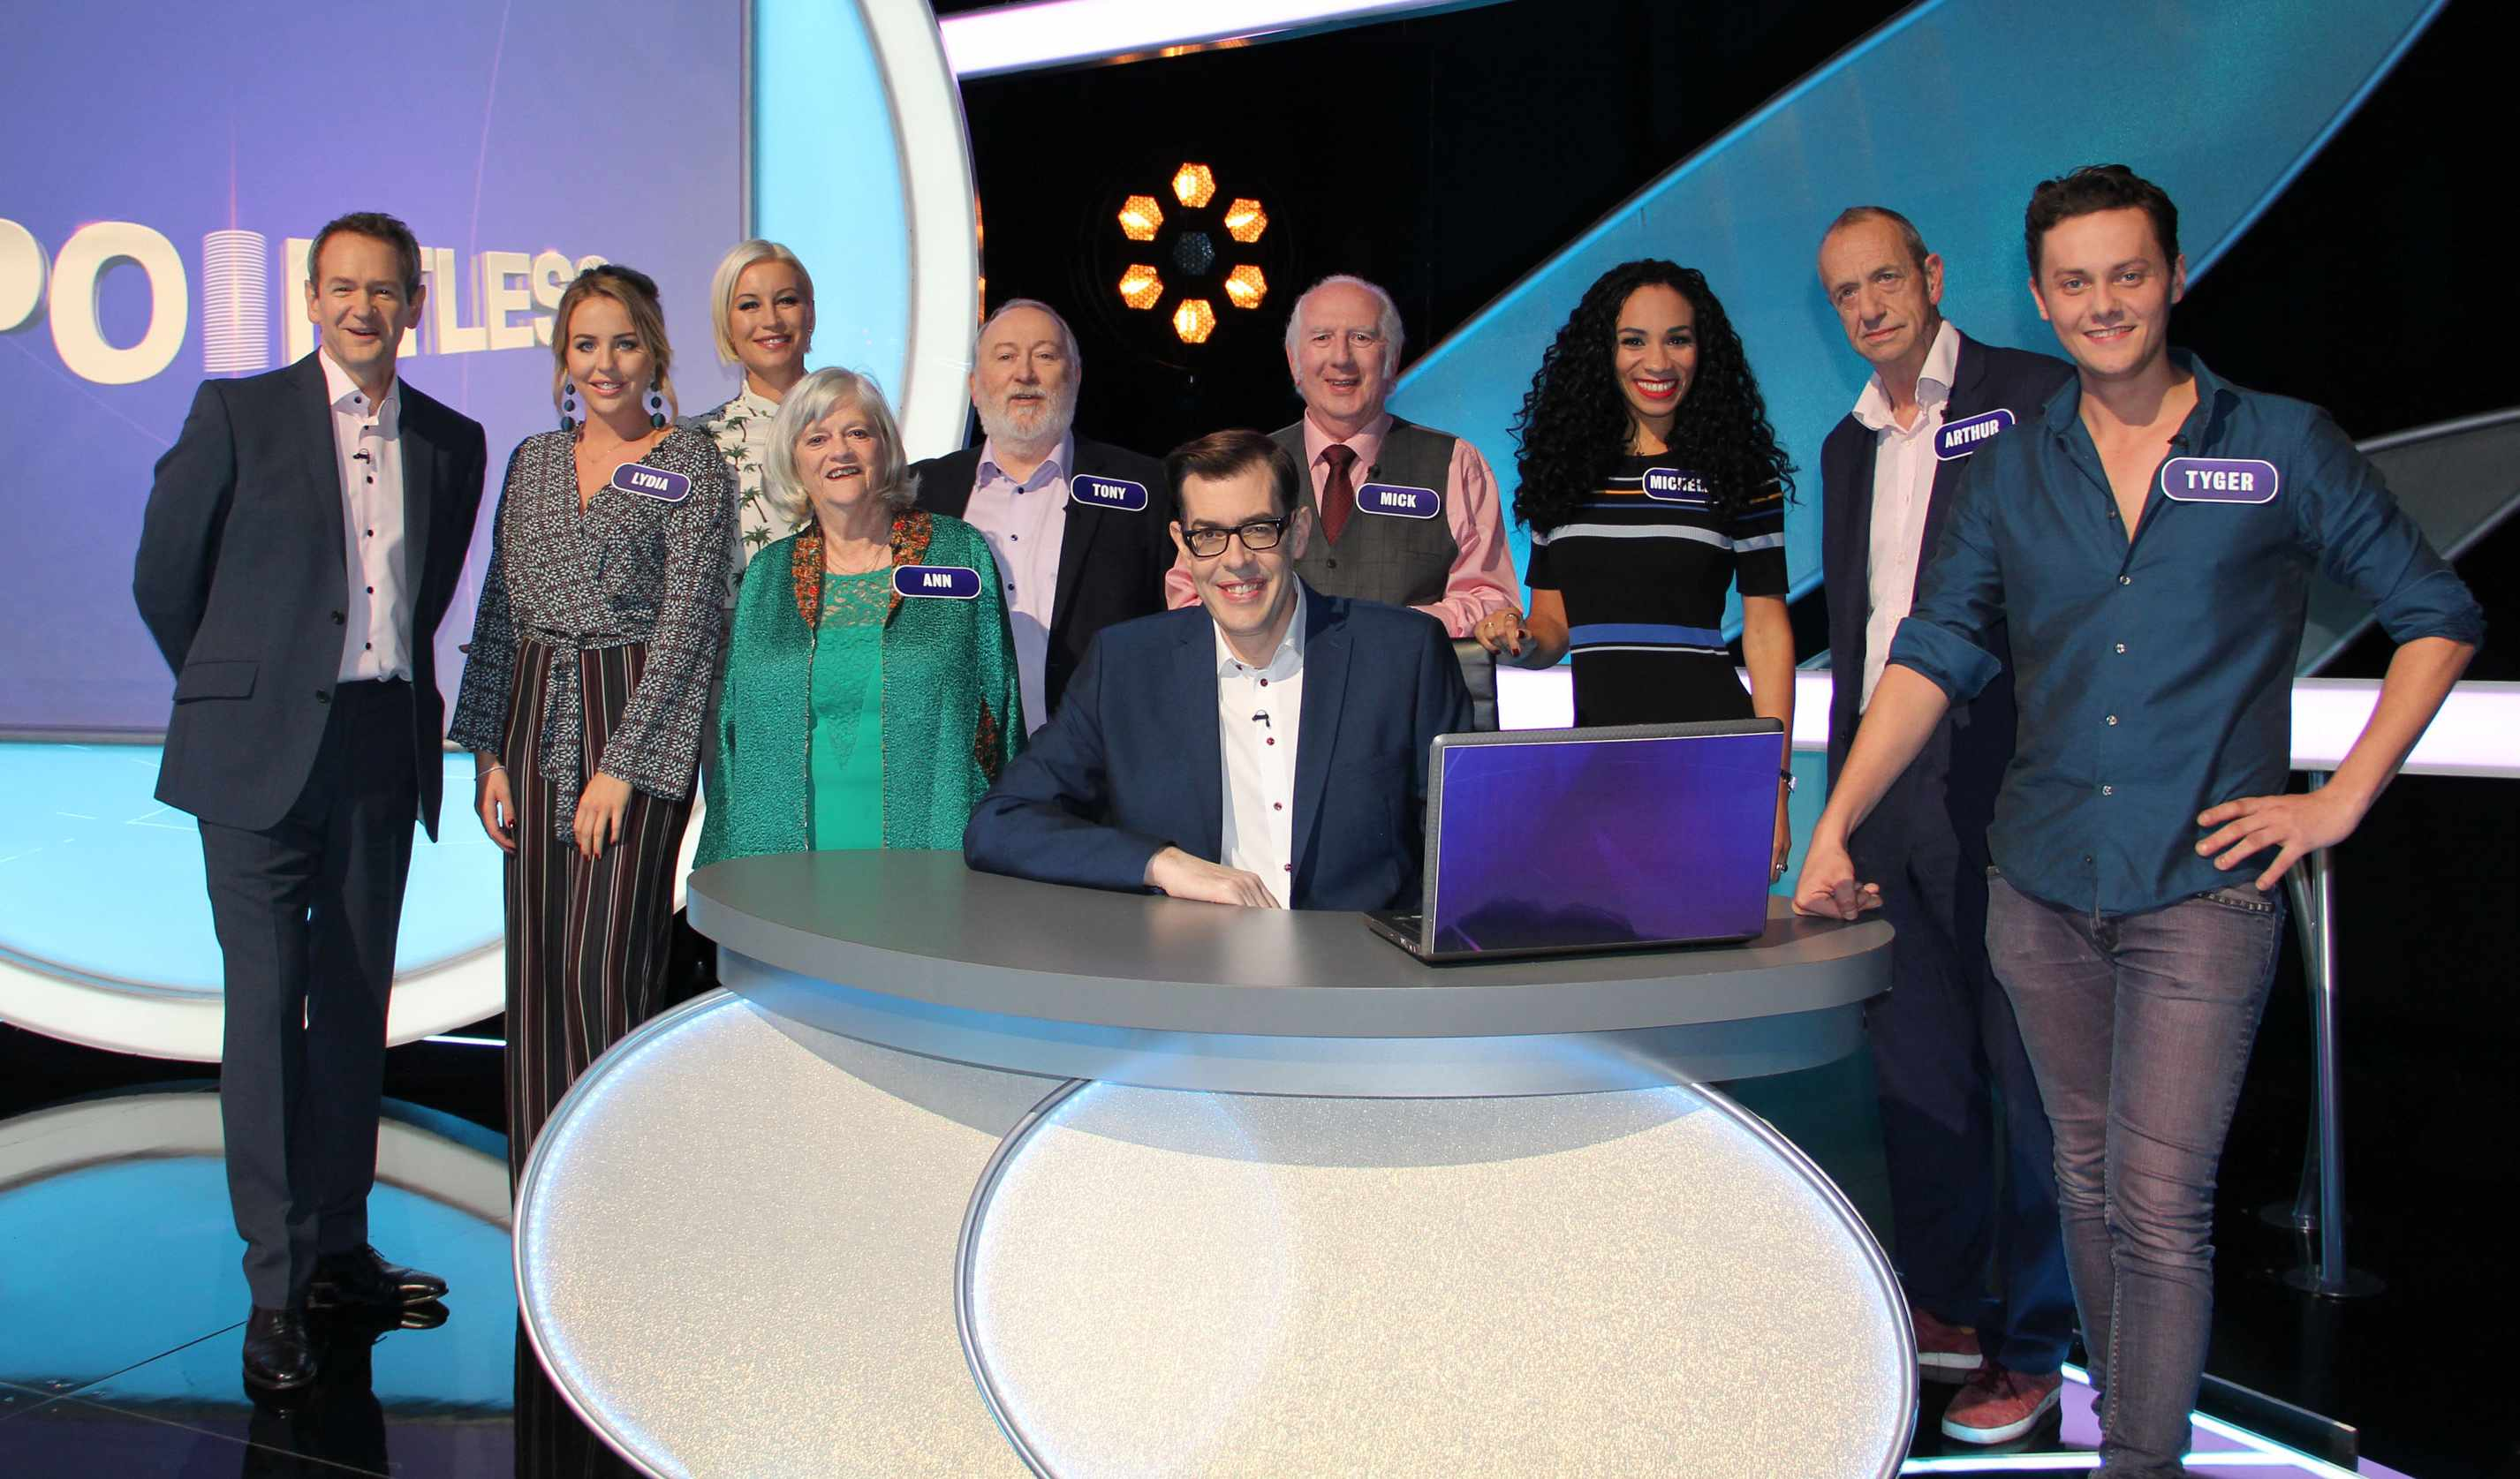 Programme Name: Pointless Celebrities - TX: 28/04/2018 - Episode: Celebrity Special (No. Celebrity Special) - Picture Shows: (L-R) Alexander Armstrong, Lydia Bright, Denise Van Outen, Anne Widdecomb, Tony Allen, Richard Osman, Mick Foster, Michelle Ackerley, Arthur Smith, Tyger Drew-Honey - (C) Endemol Shine Group - Photographer: Jack Barnes